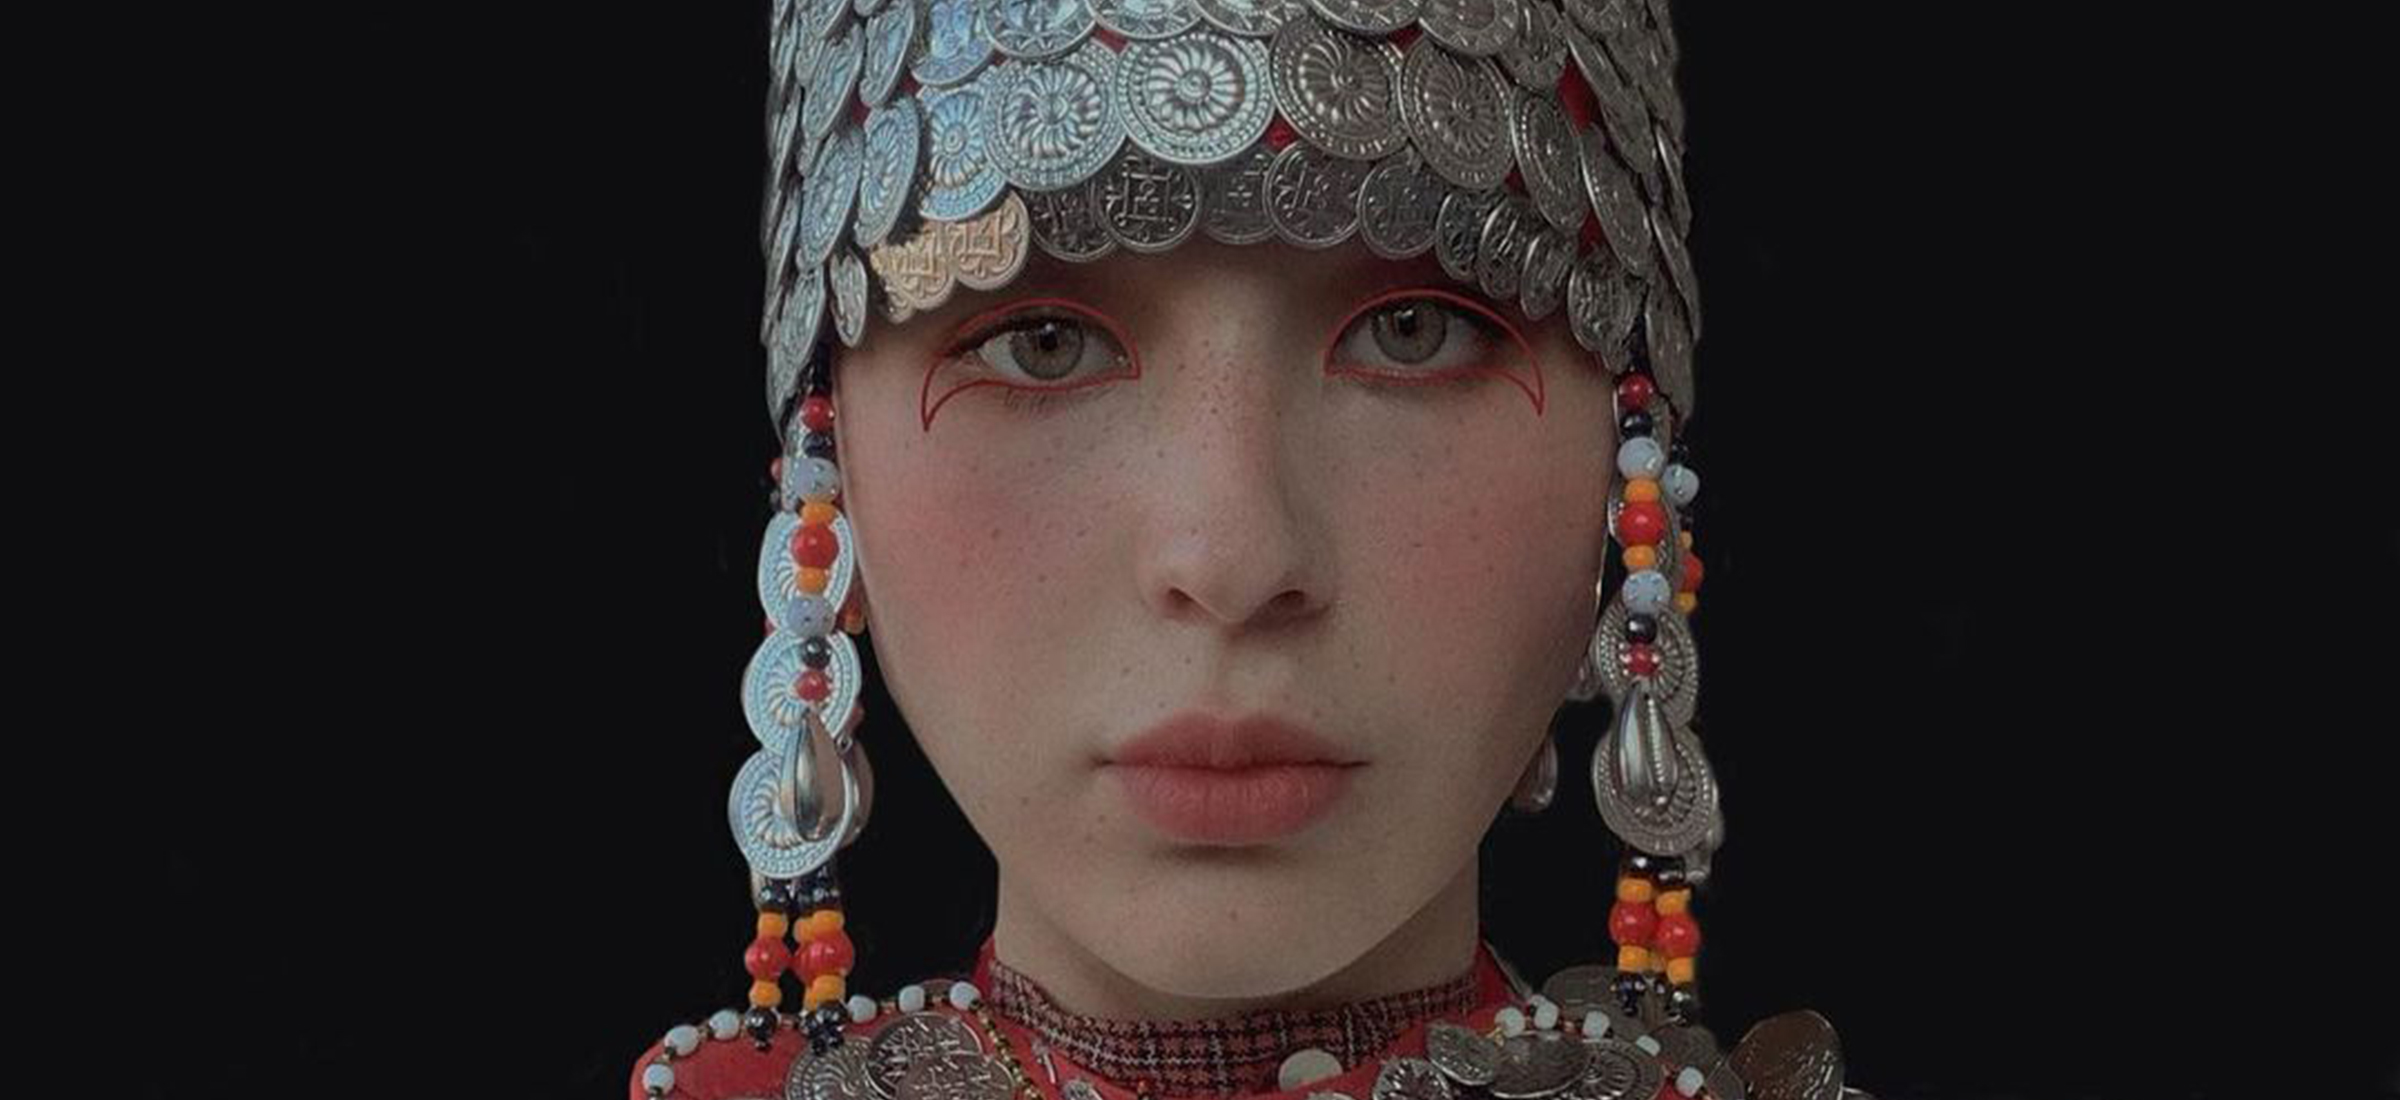 Gen Z's Polina Osipova is reimagining Russia's indigineous cultures for a digital age